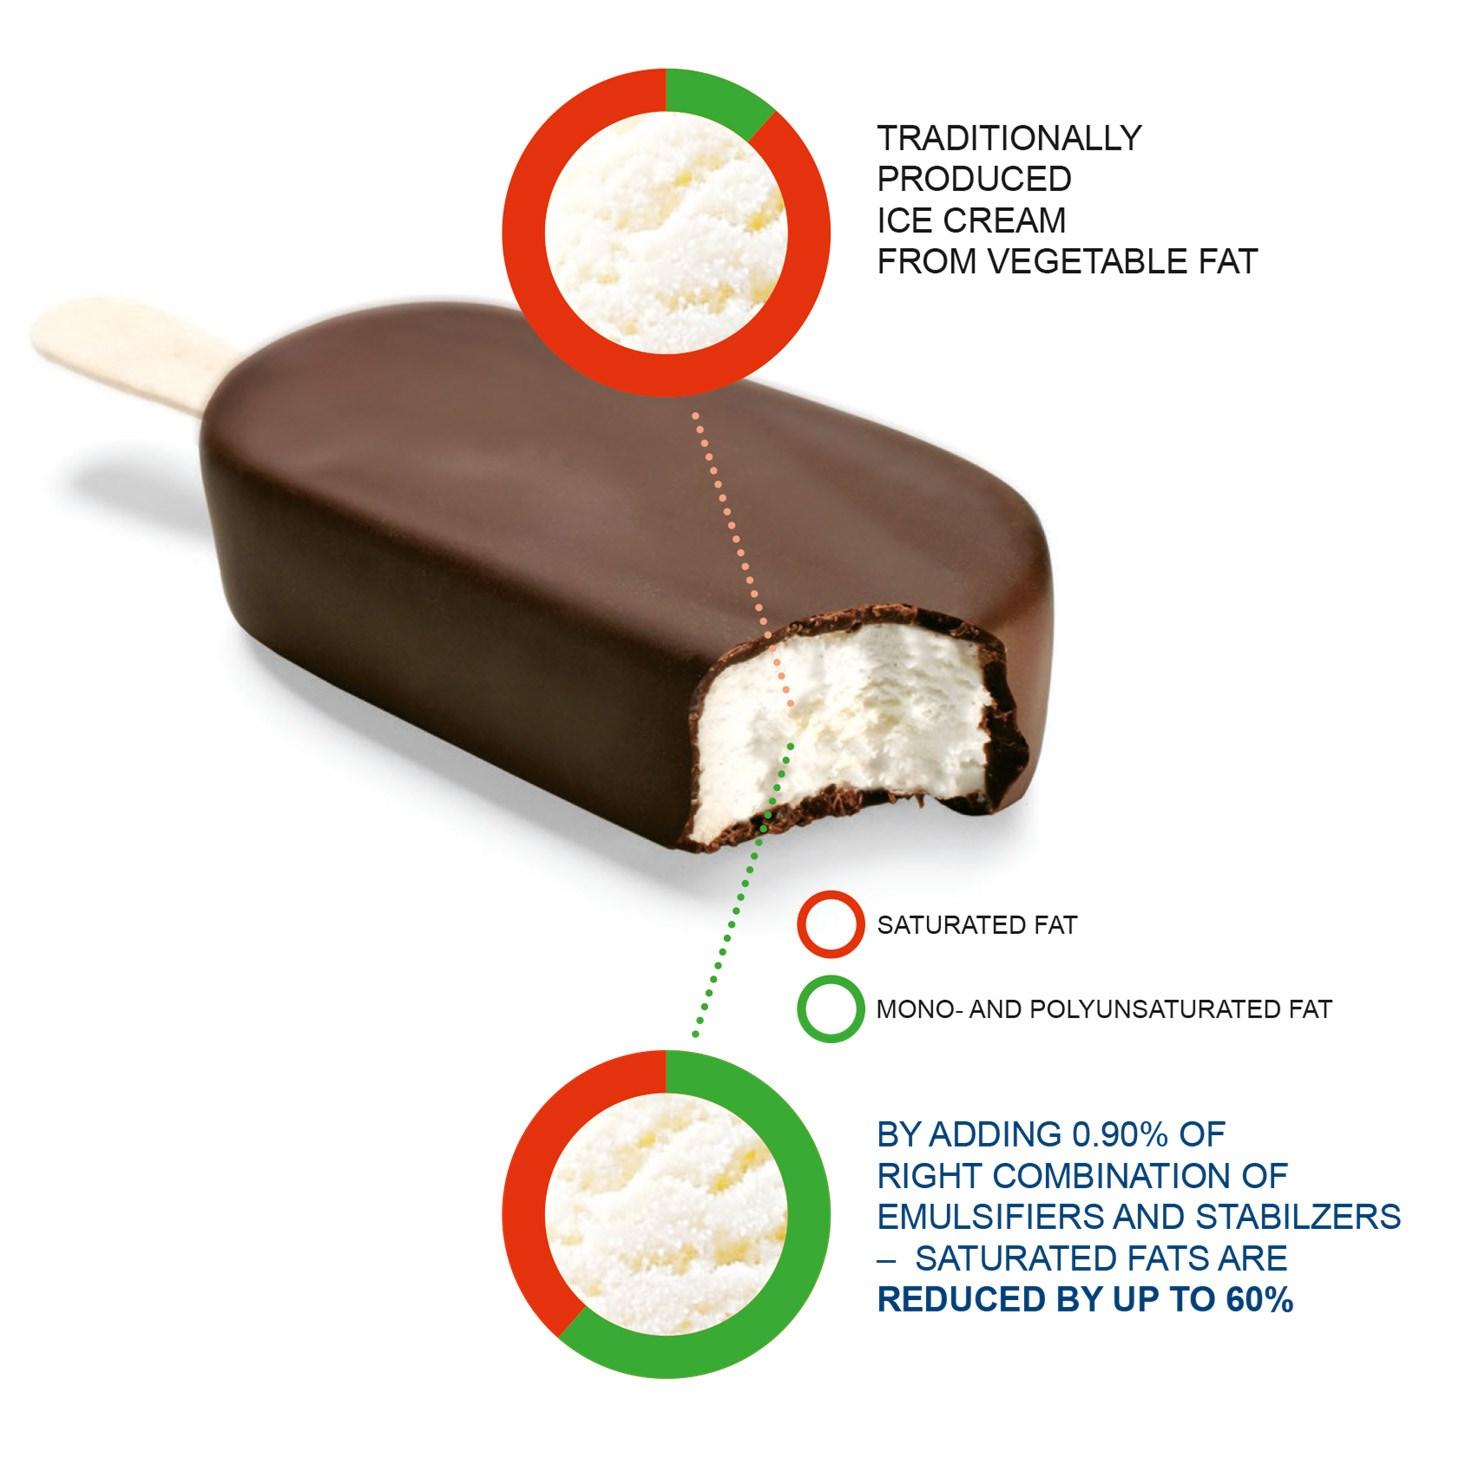 Discover How To Produce Ice Creams With Less Saturated Fats By Using Palsgaard Extruice And Palsgaard Lactem Emulsifiers Infographic